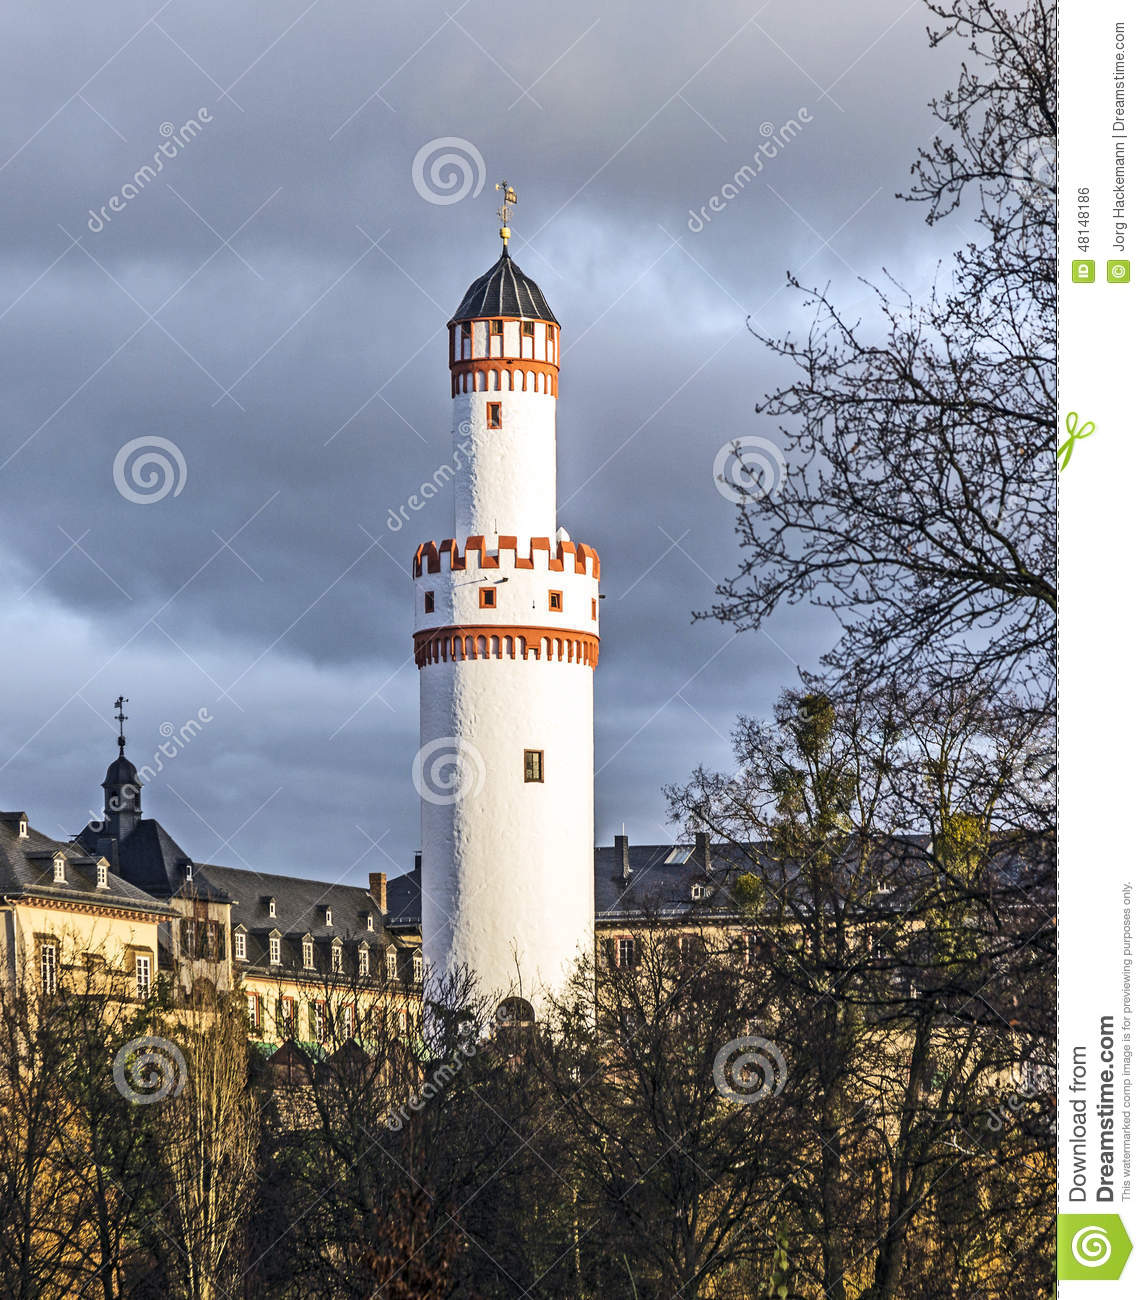 Weisser Turm Or White Tower In Bad Homburg Stock Photo.